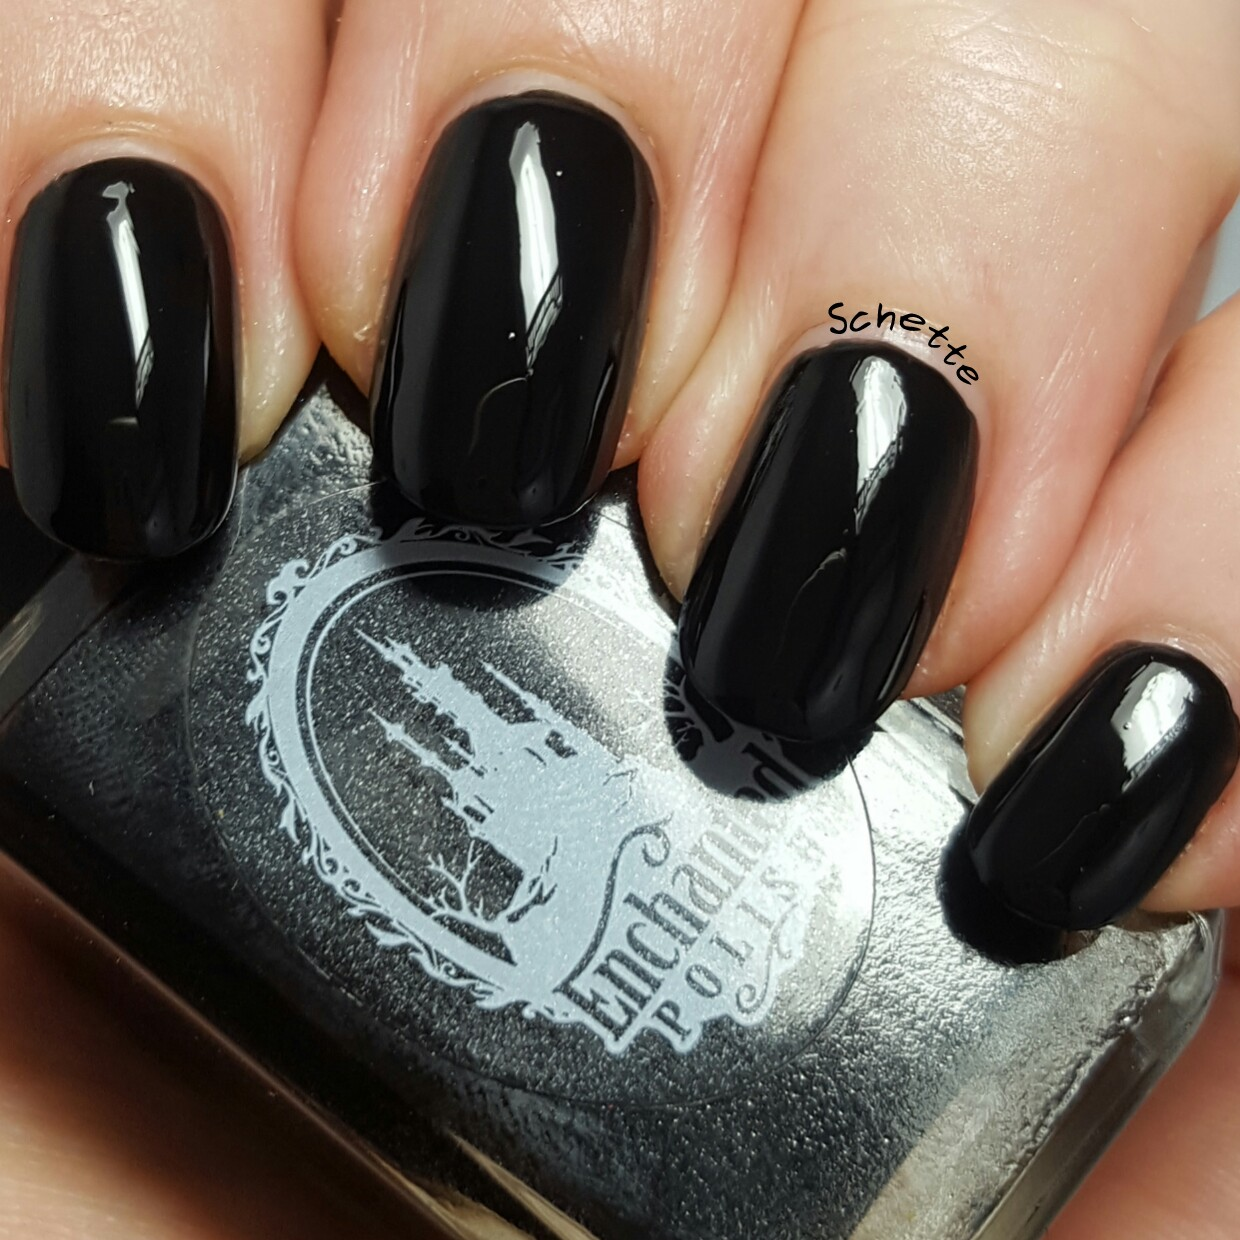 Enchanted Polish - Paint it black